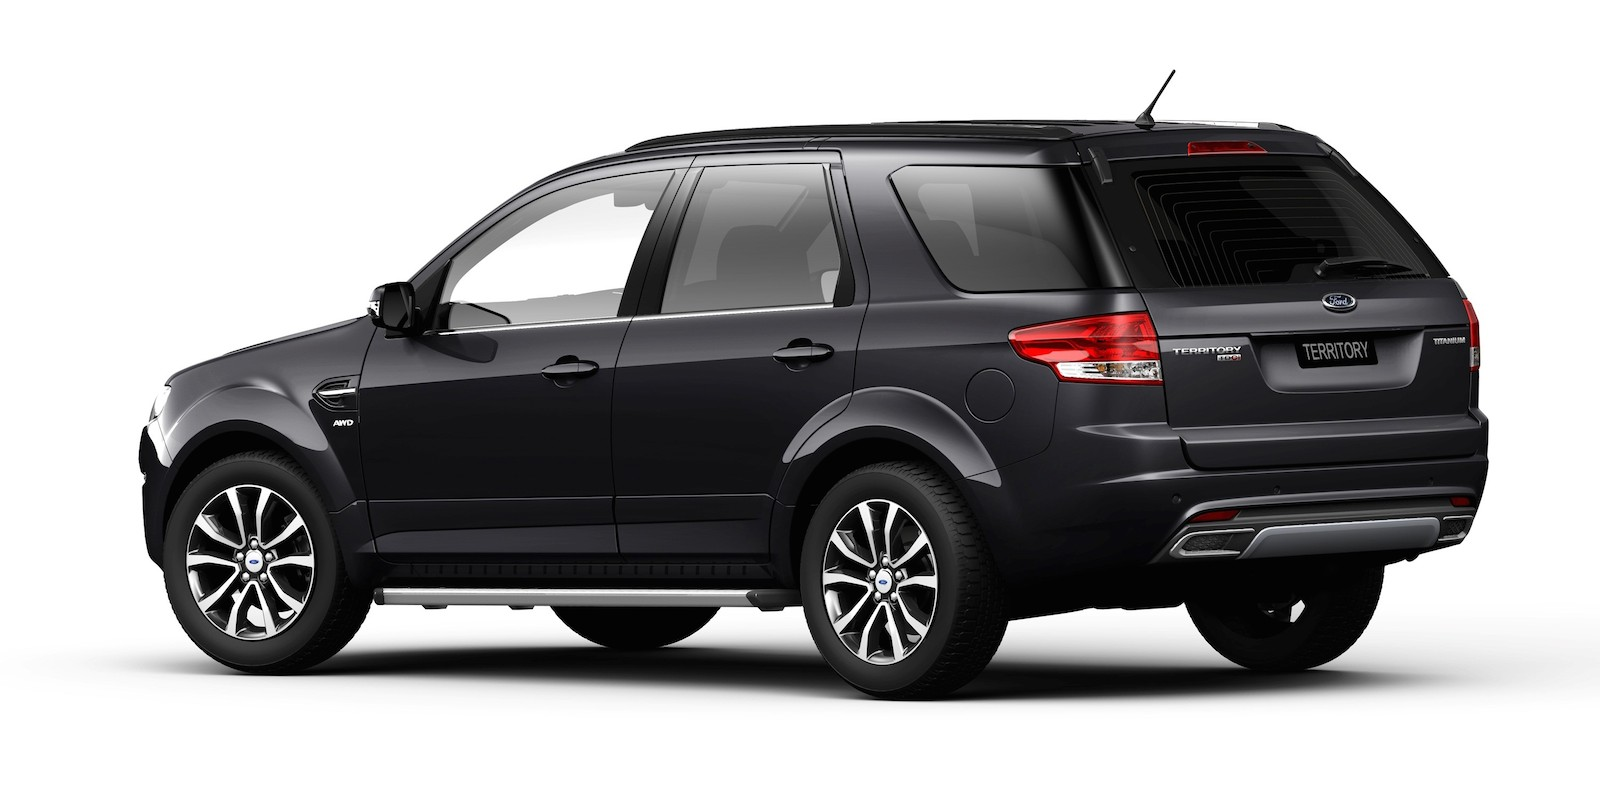 ford territory specifications detailed  caradvice